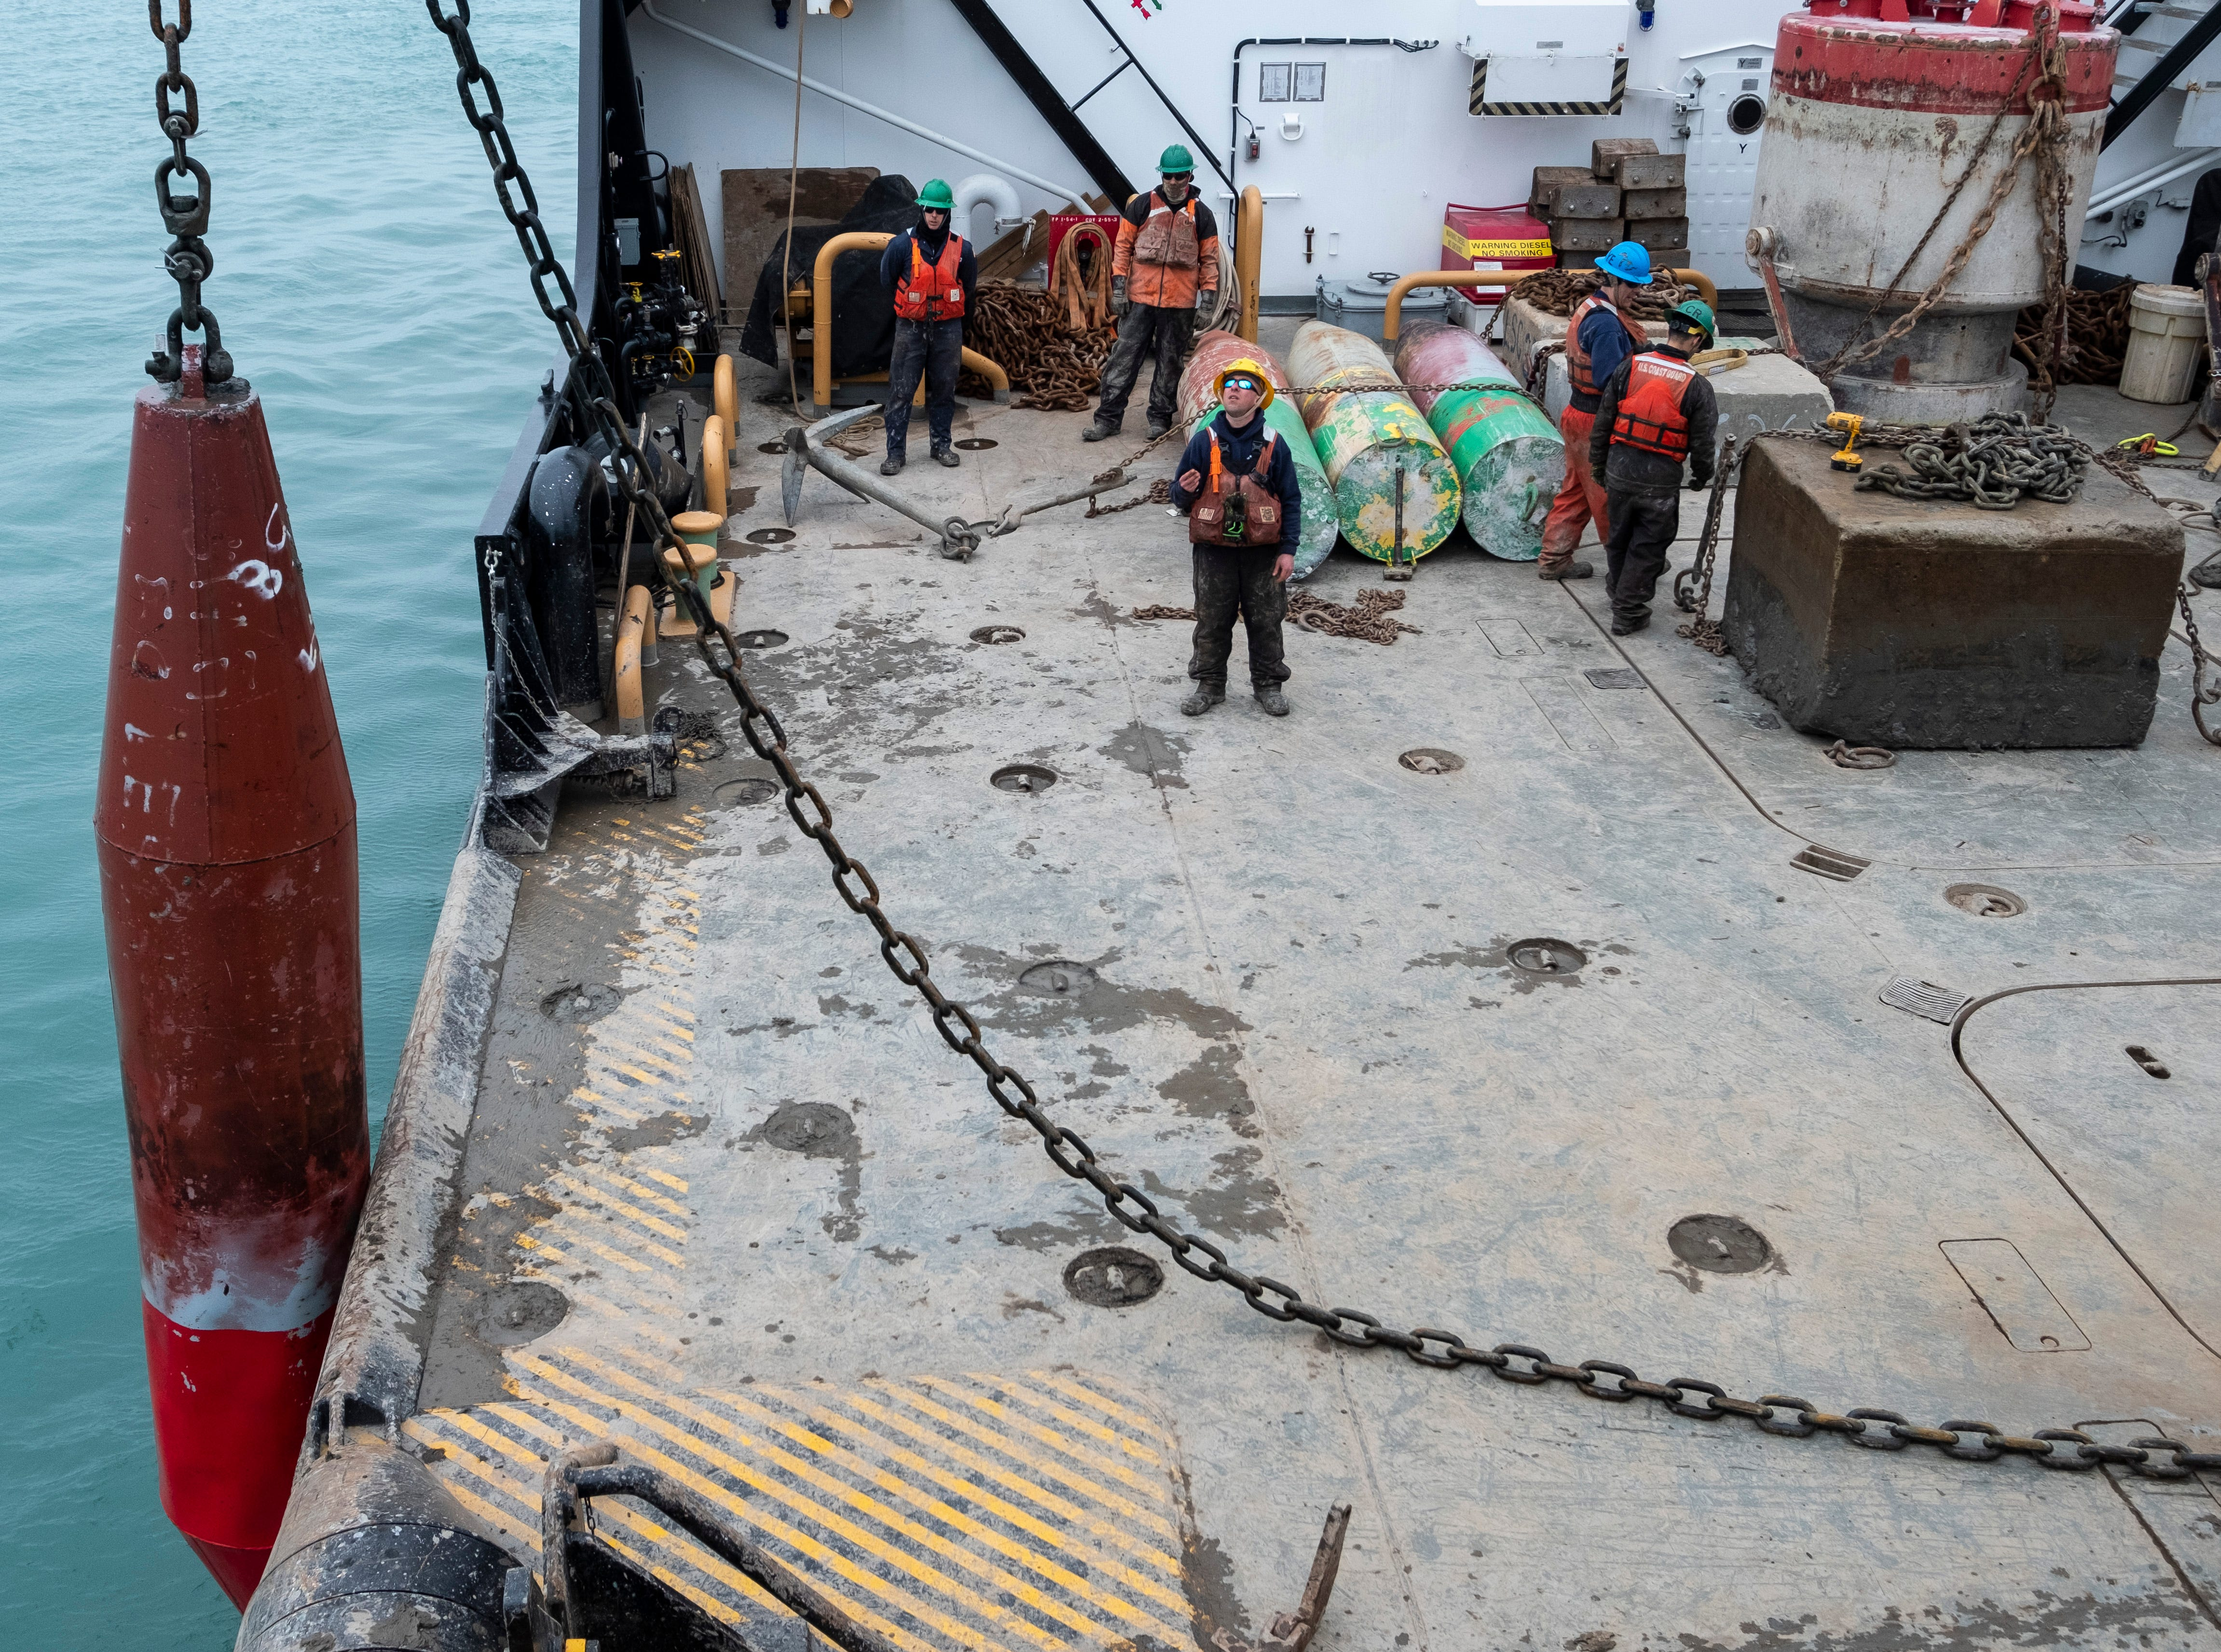 The sunken buoy is lifted out of the water and onto the Hollyhock's buoy deck. The cuase of the sinking was not immediately determined, although crewmembers said it could have been punctured from ice or a passing ship.